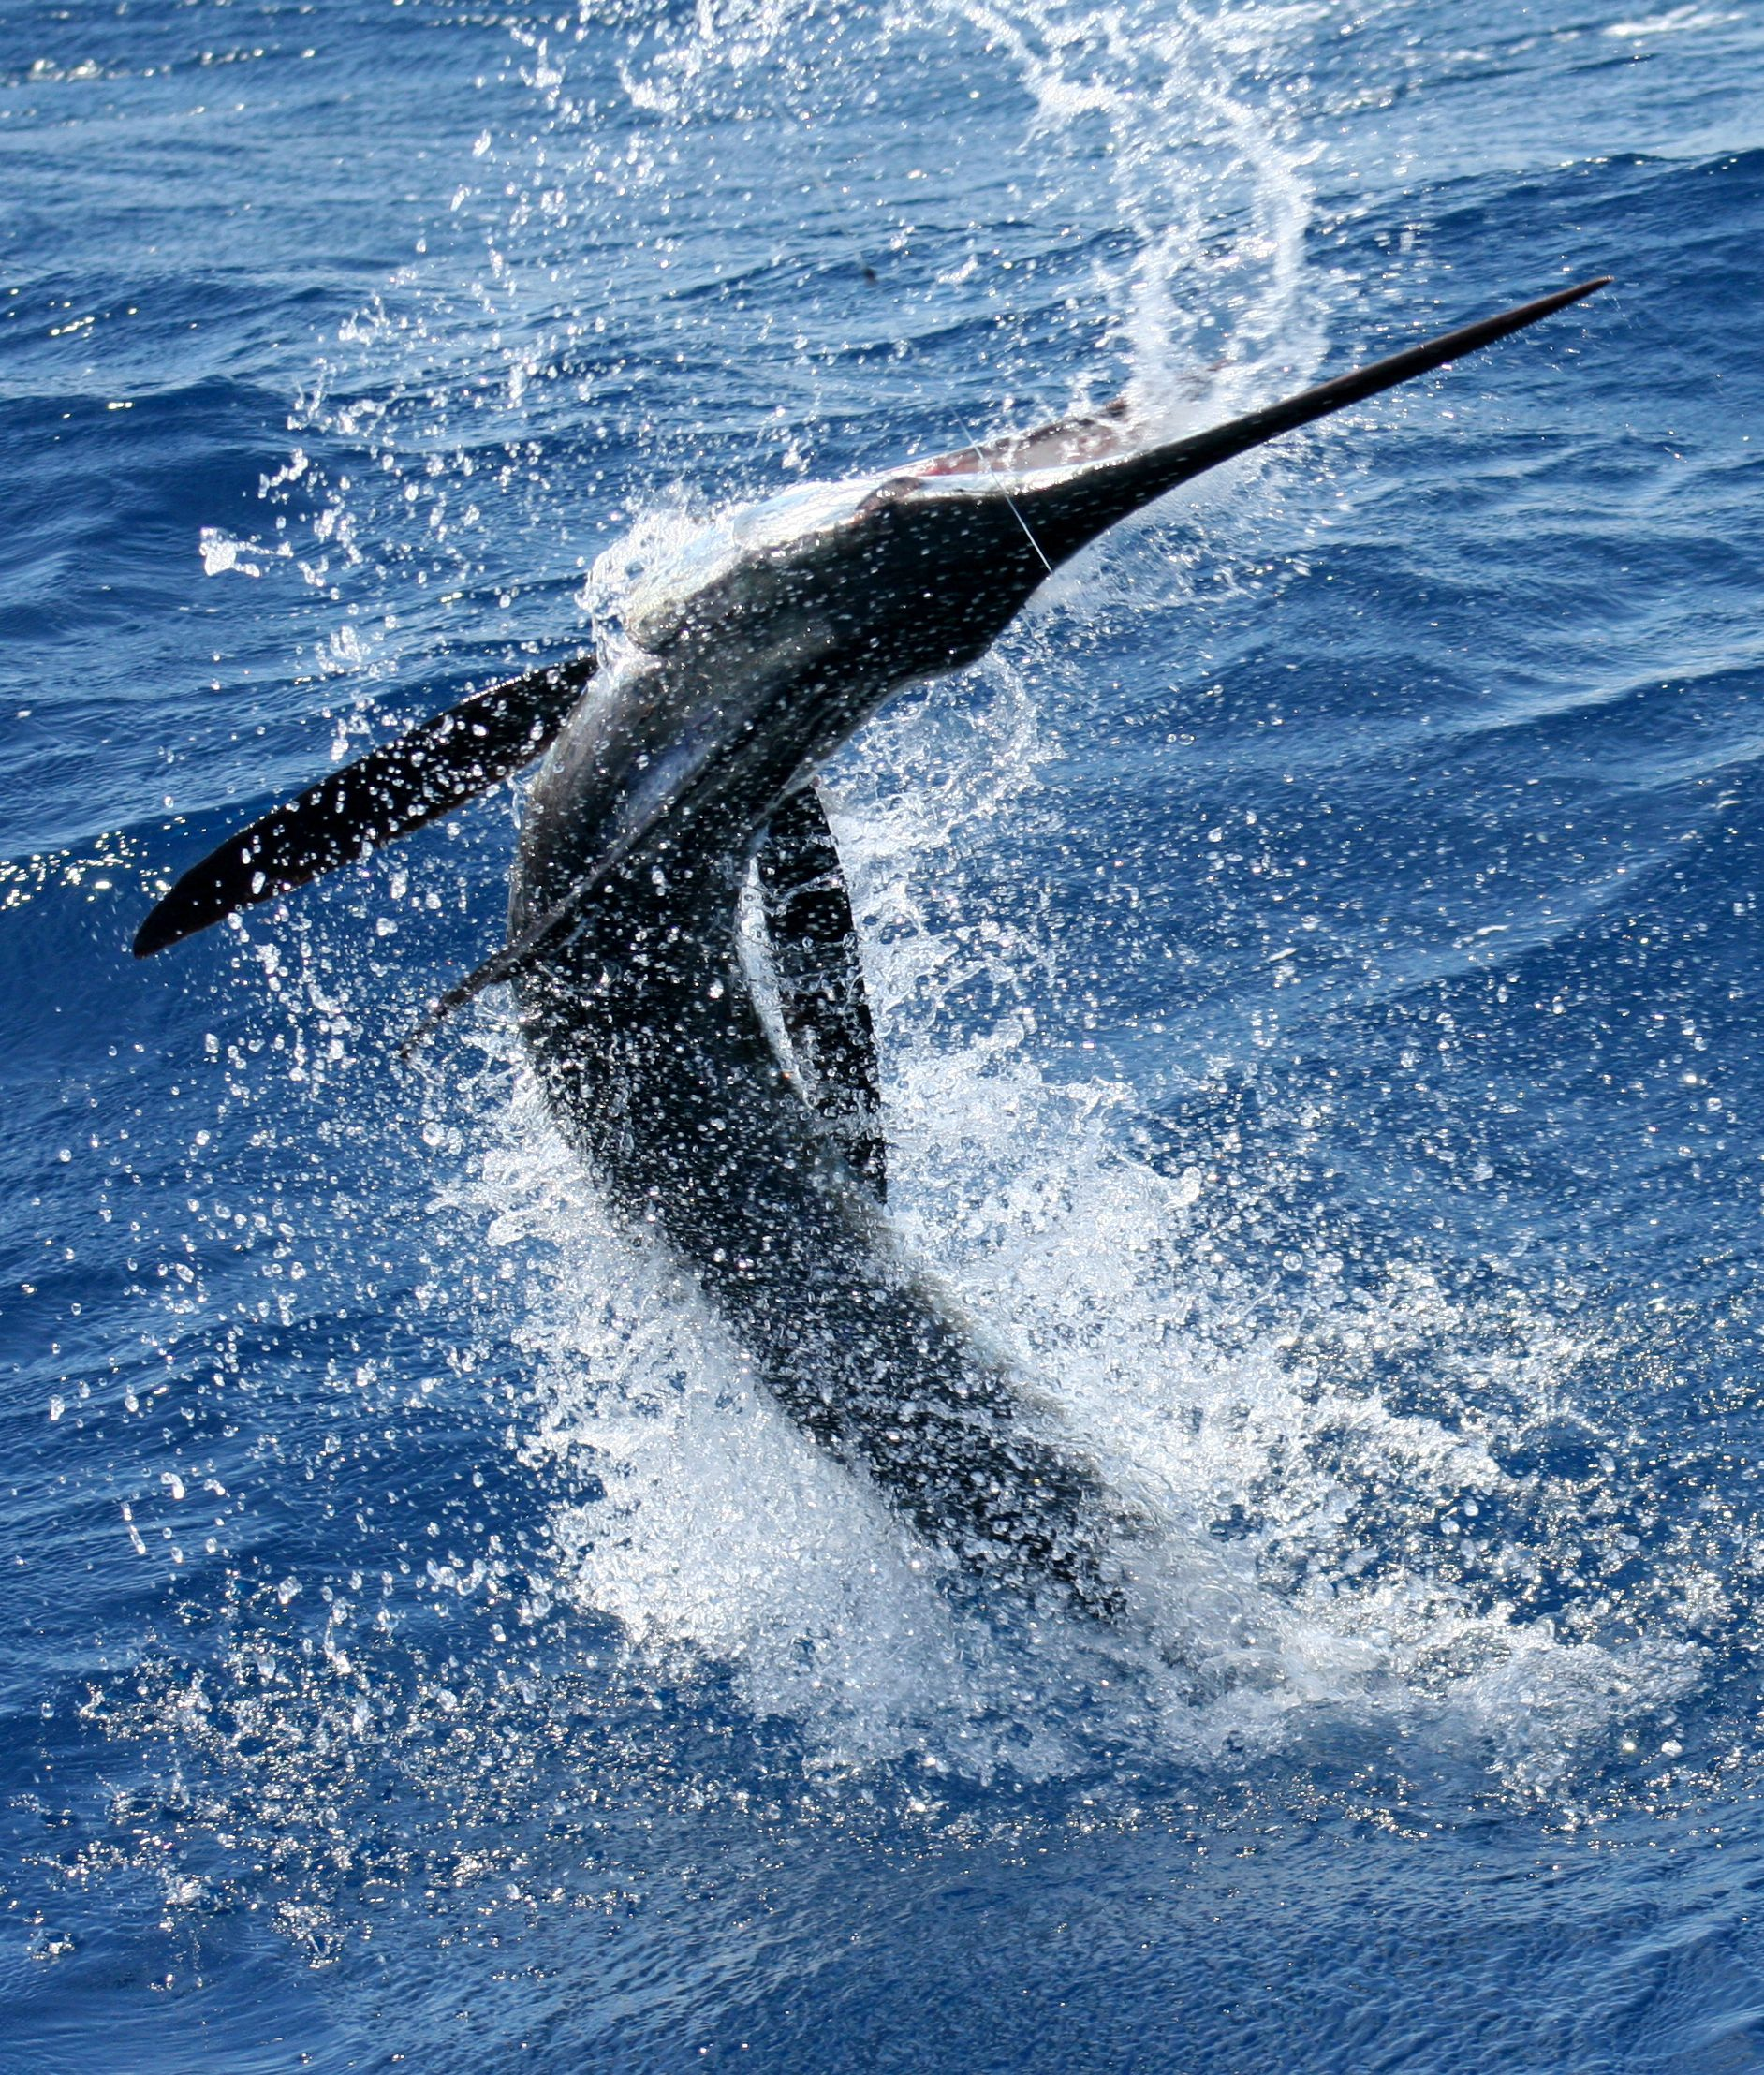 Deep Sea Fishing for Marlin off the coast of Cabo San Lucas